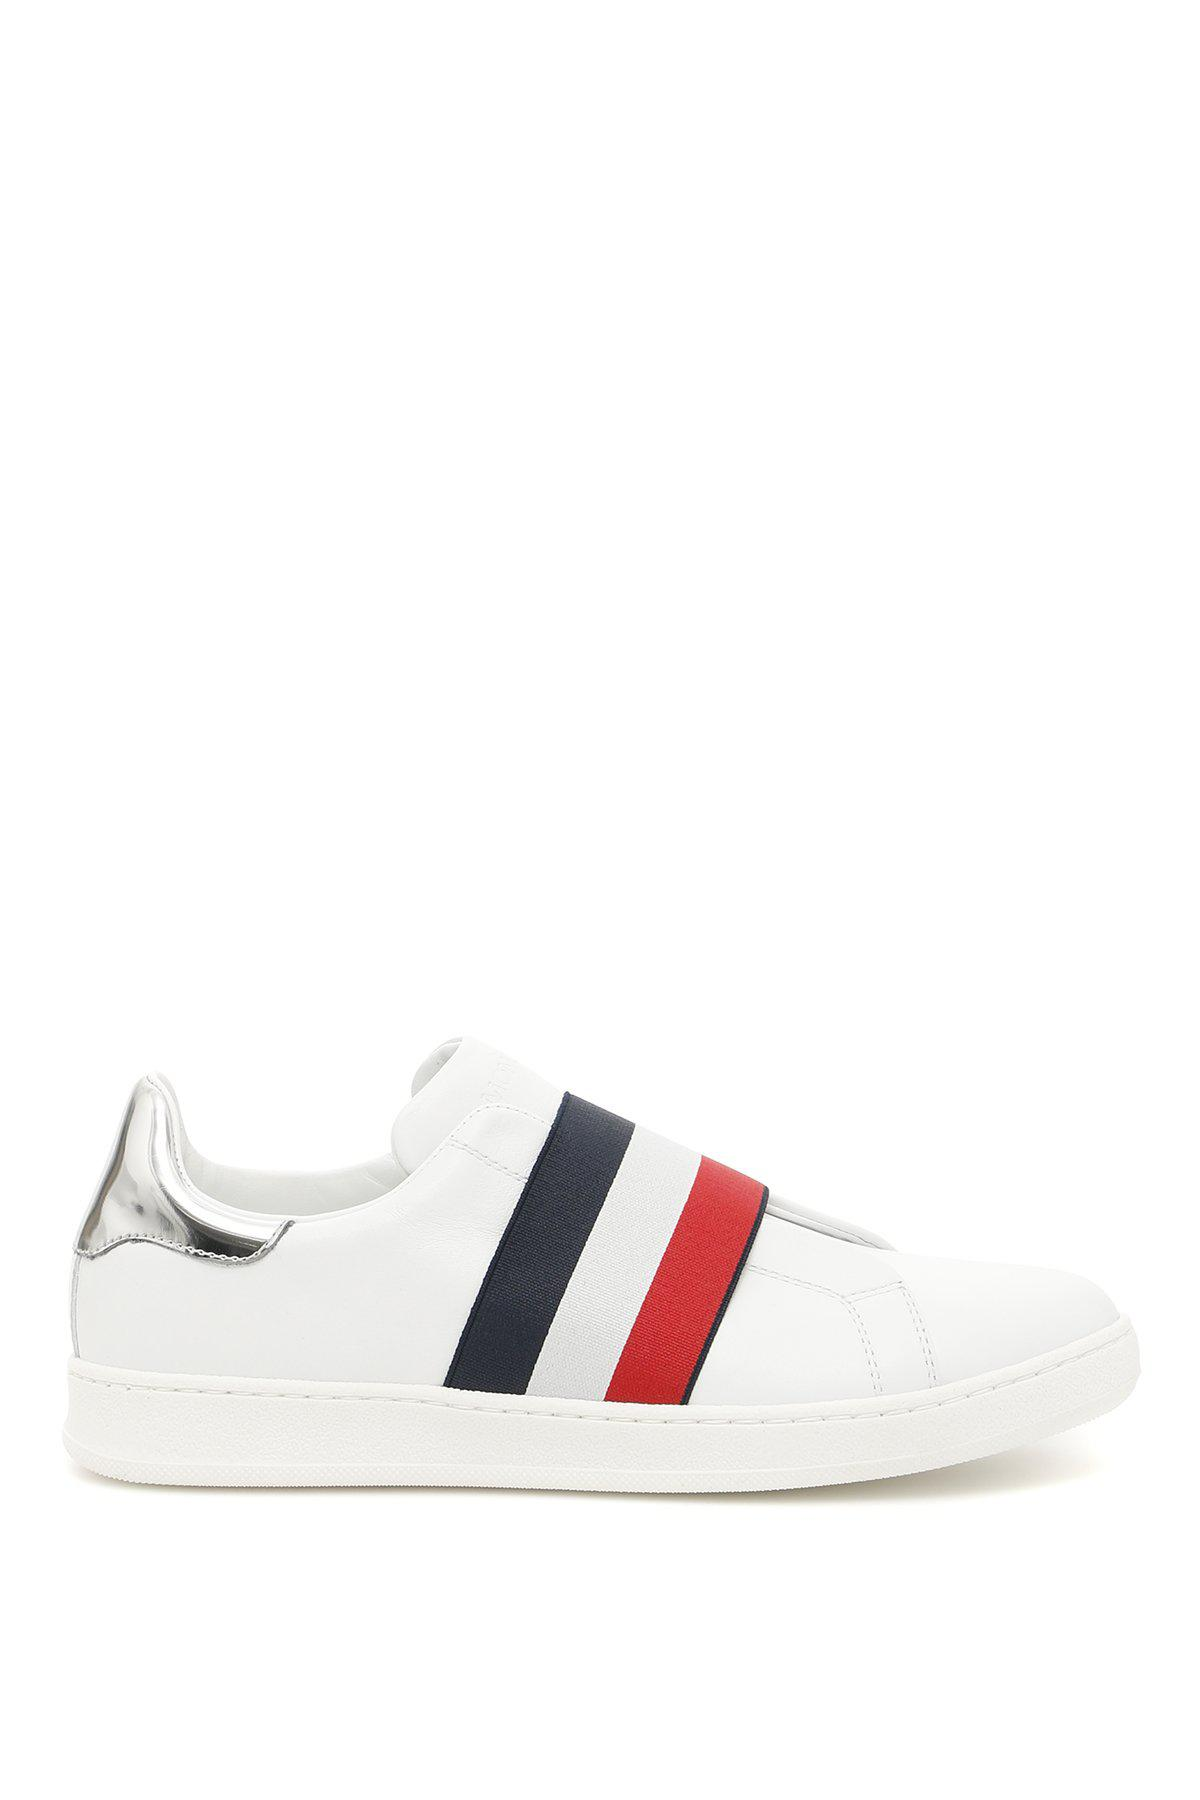 Alizee sneakers - White Moncler Wiki For Sale Cheap Footlocker Pictures Discount Pictures Free Shipping Excellent Discount Official 775xyvt9dT